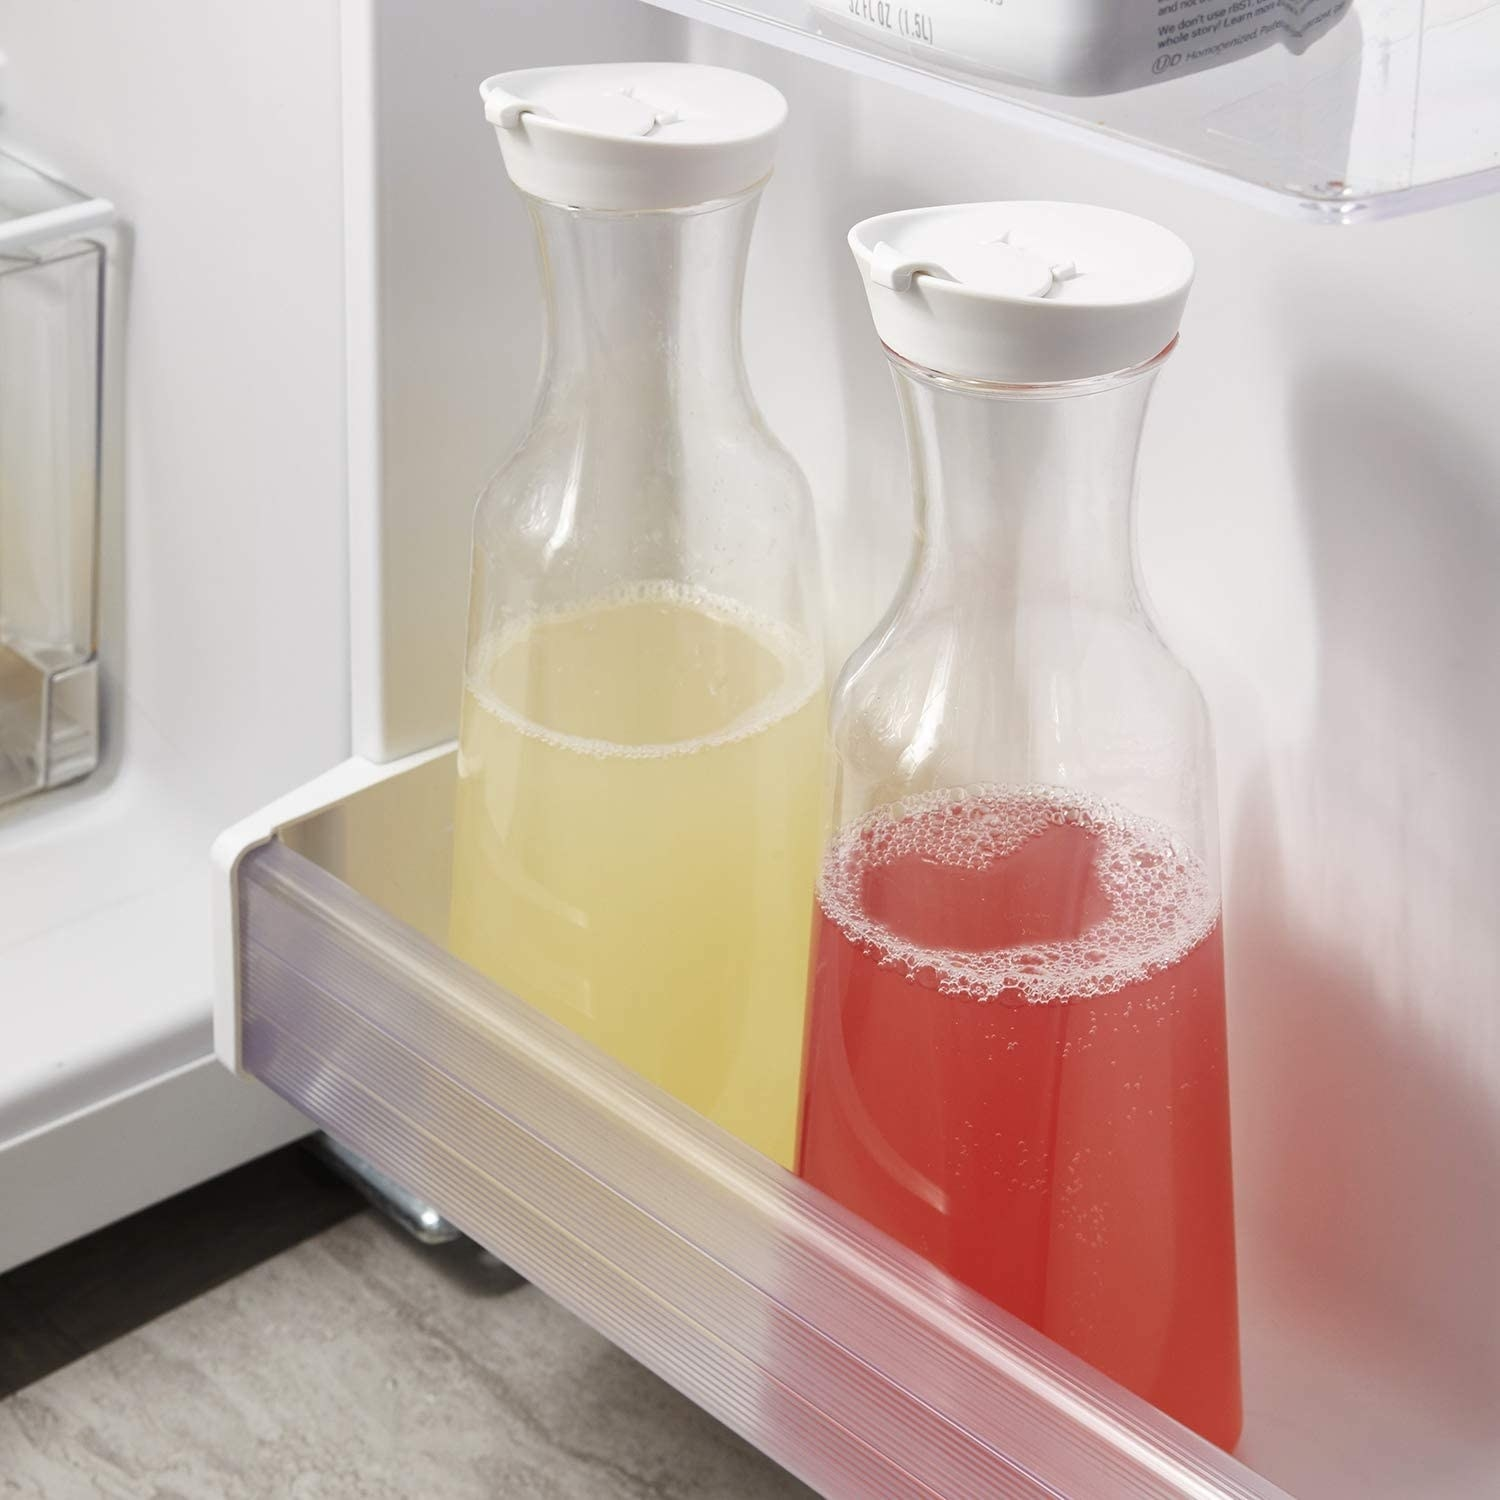 two tall carafes in square shape at bottom with lids in a fridge door